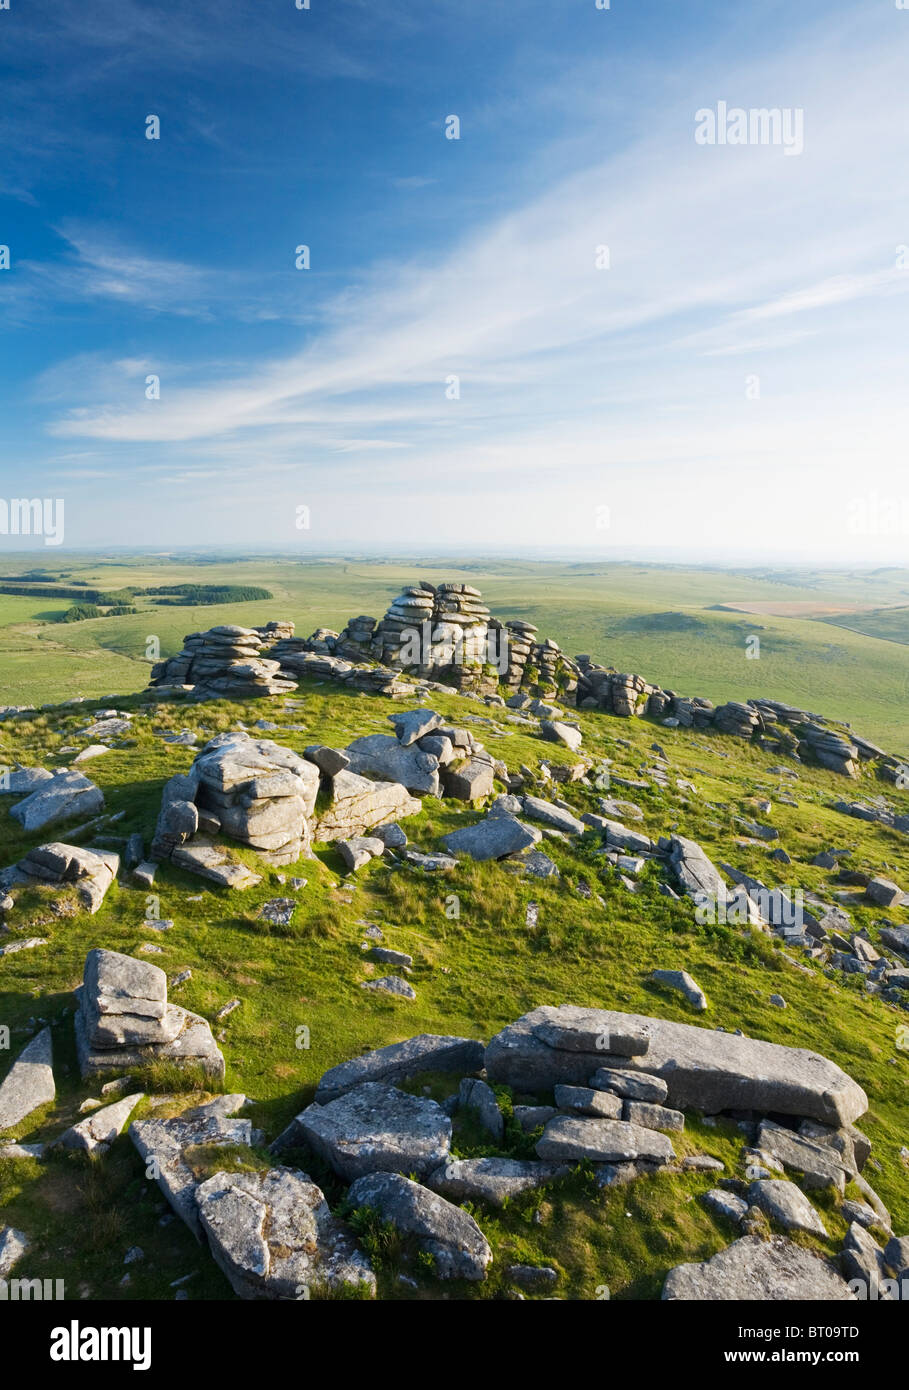 Granite rock formations on the summit of Rough Tor, Bodmin Moor. Cornwall. England. UK. - Stock Image